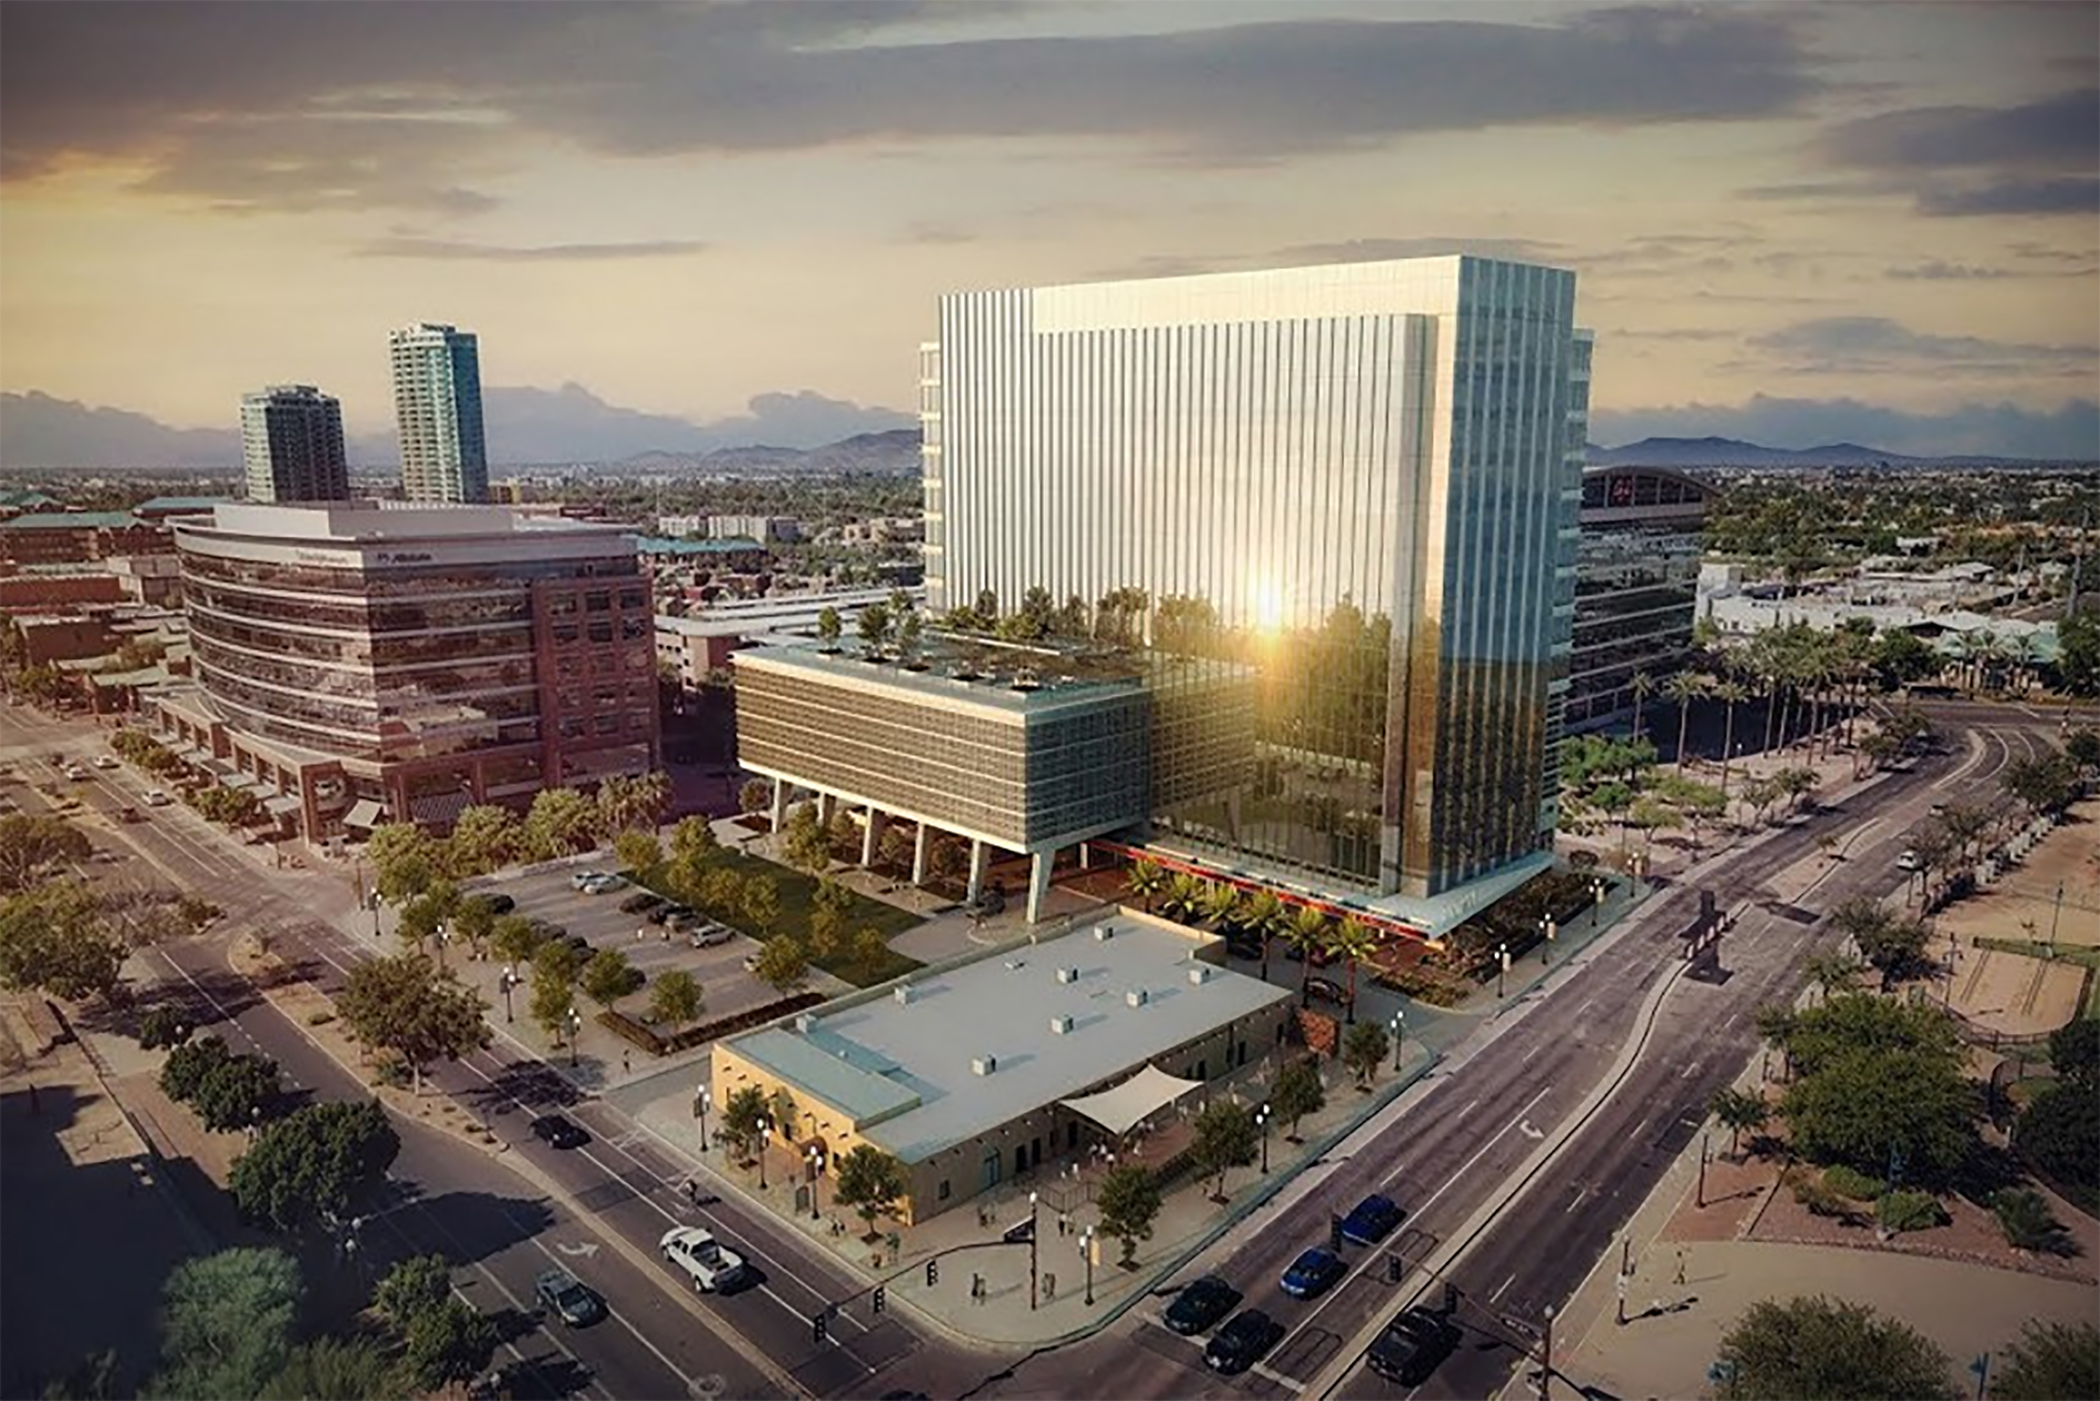 Construction is under way on the office portion of One Hundred Mill in Tempe, Arizona. (City of Tempe)